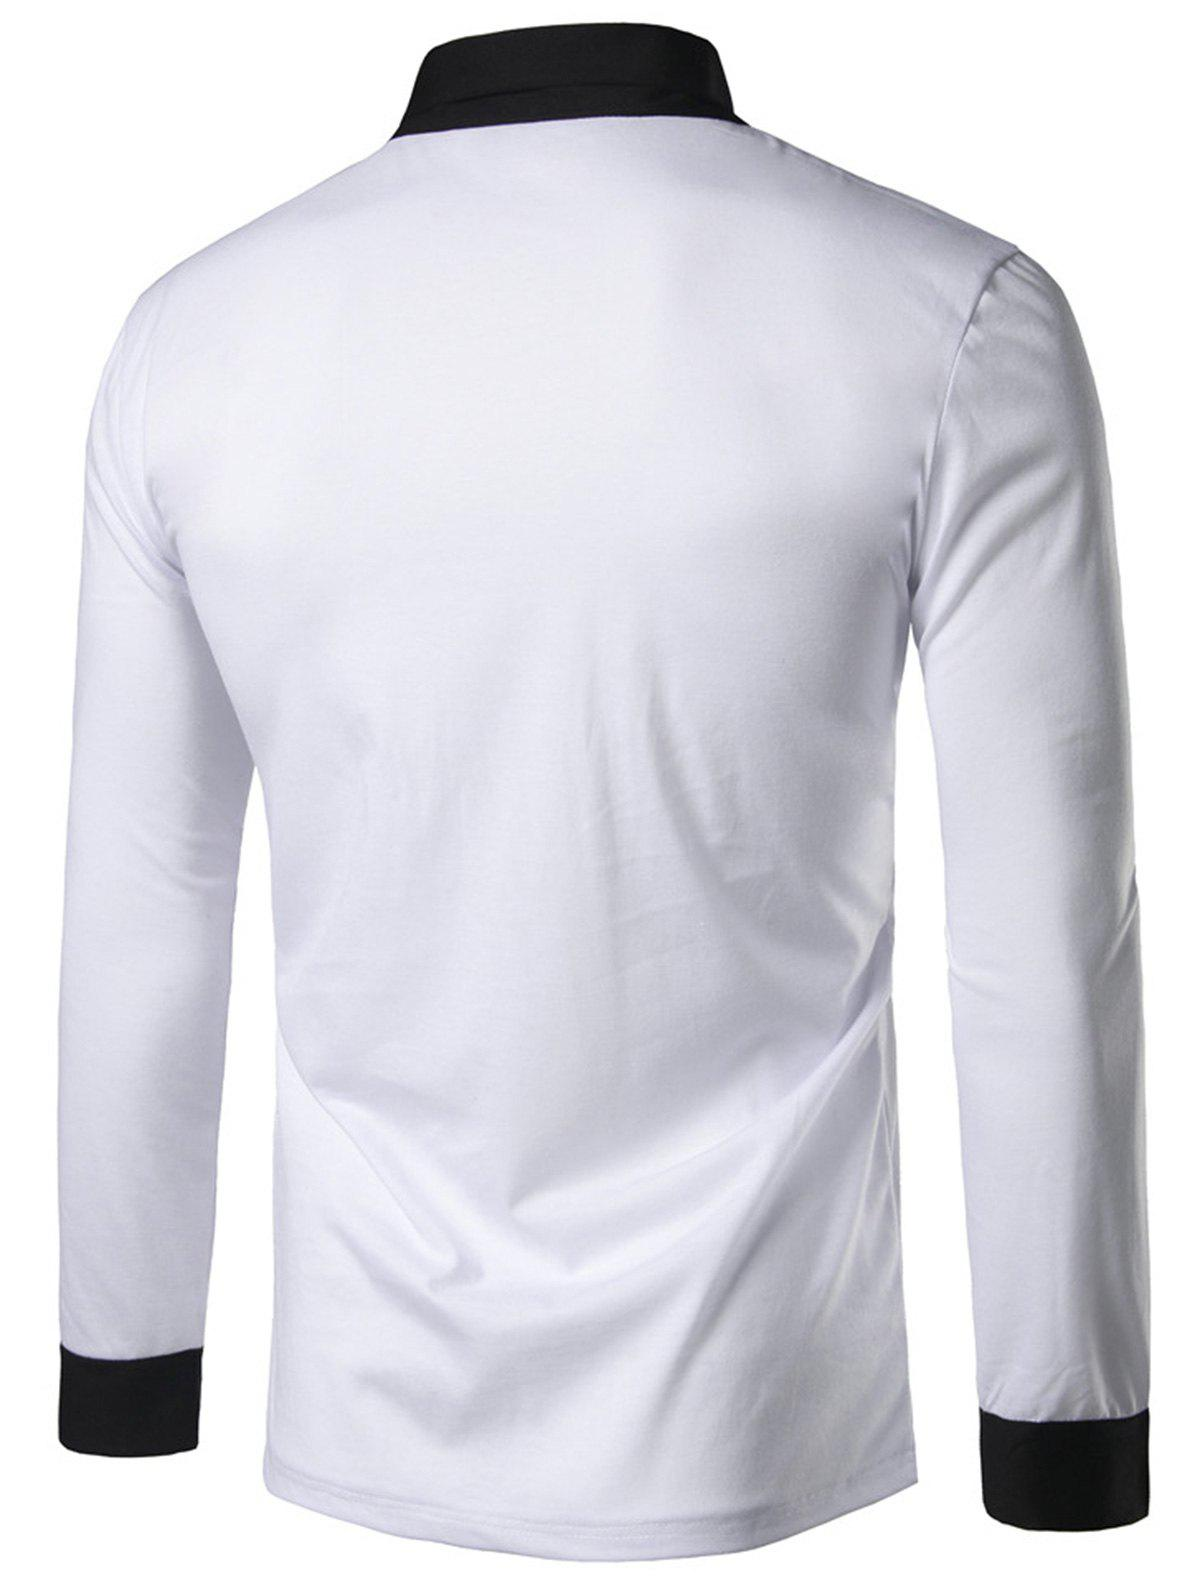 2018 shawl collar long sleeve panel t shirt white l in for Shawl collar t shirt